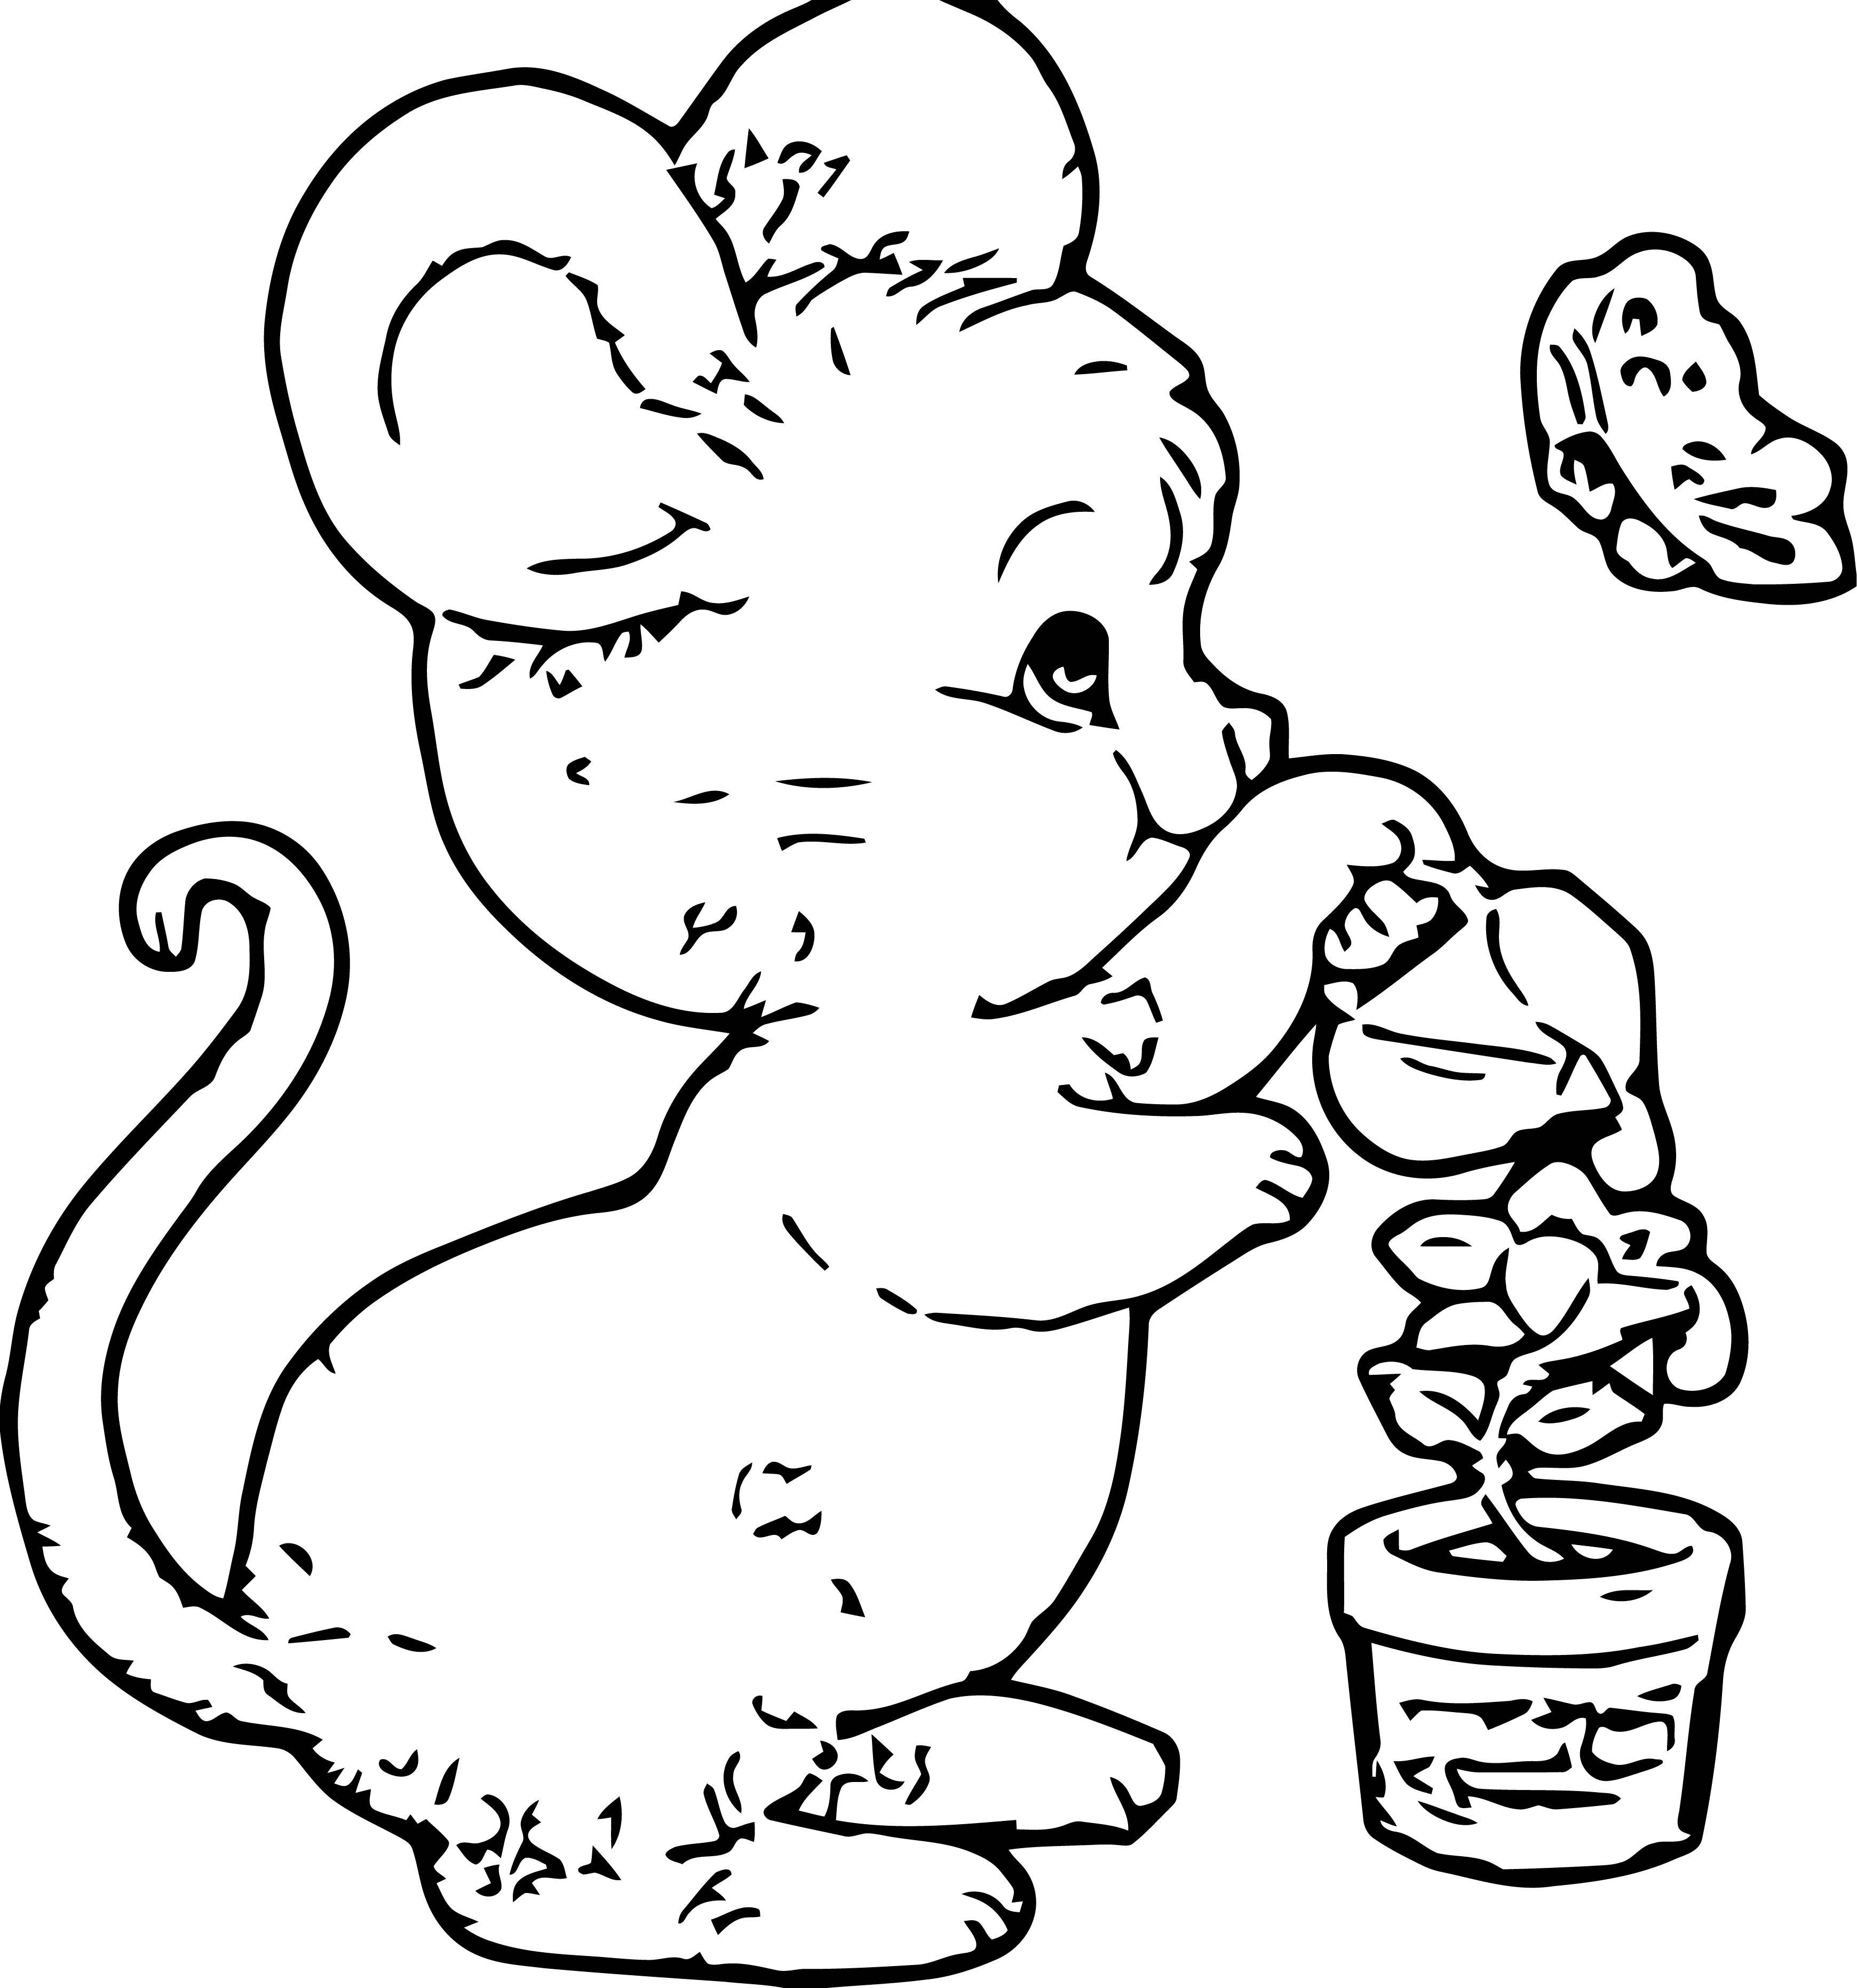 Mouse Jpeg Coloring Page 124